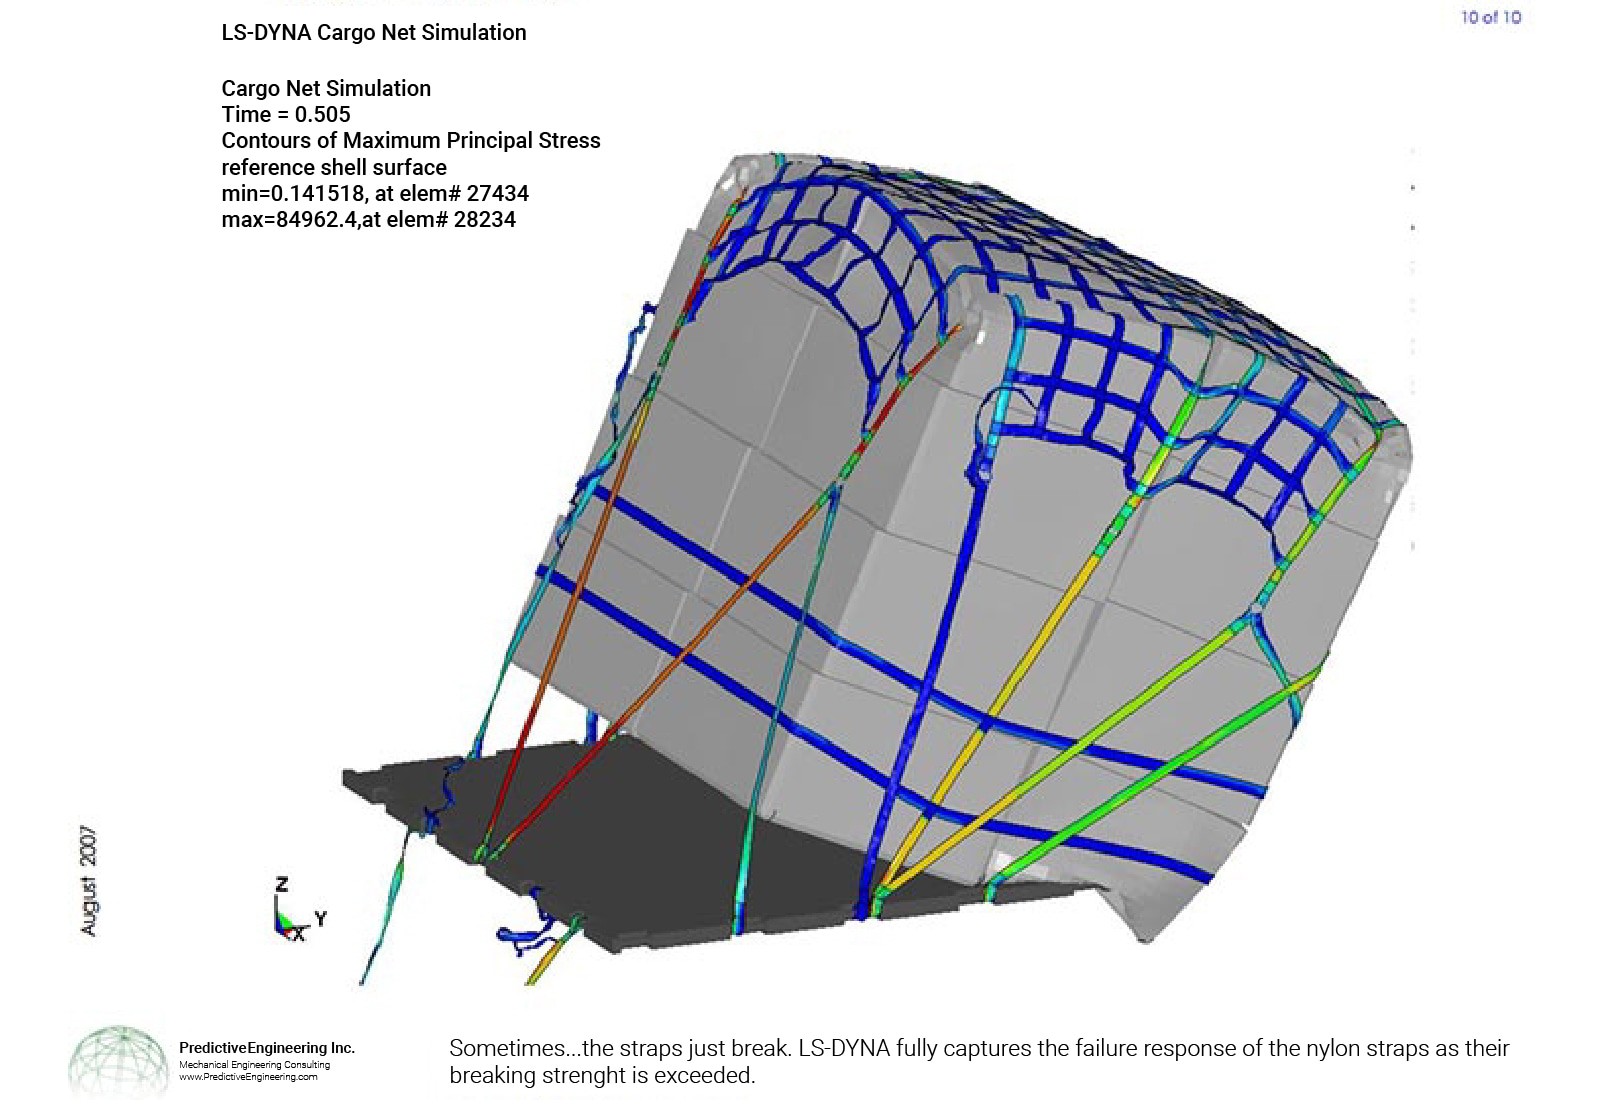 LS-DYNA simulation of failure of Nylon Strap System under 9G Crash Landing